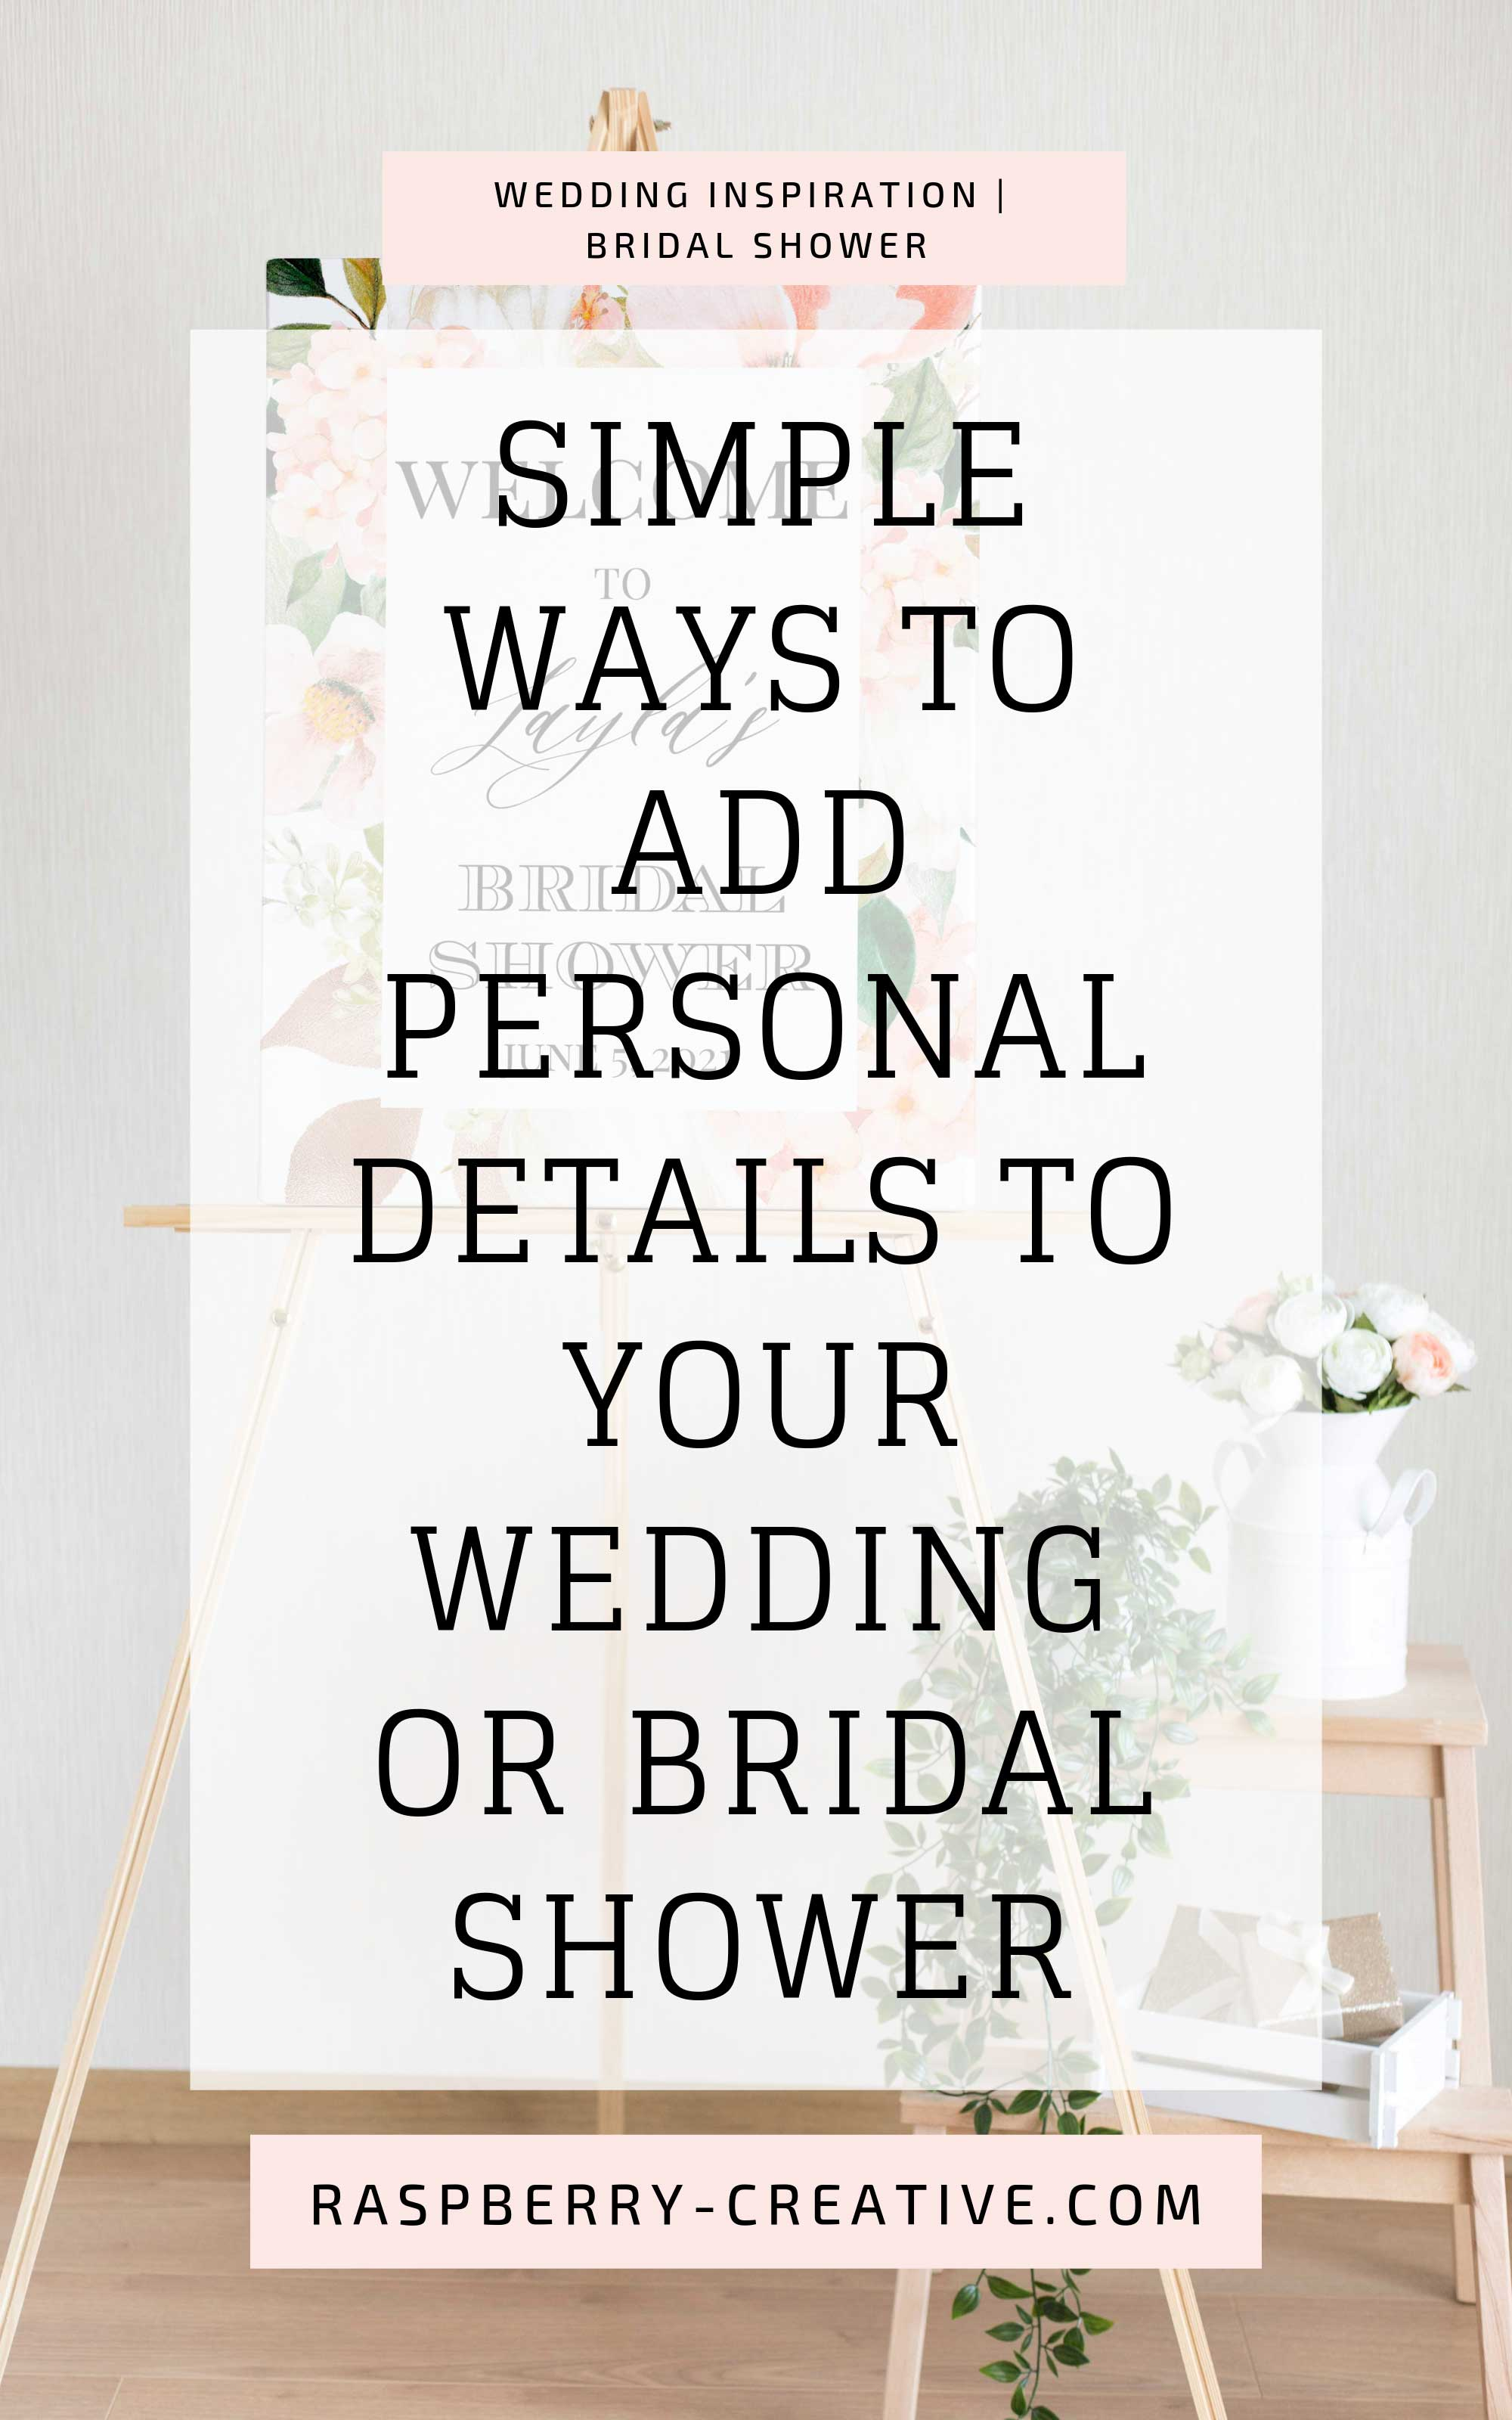 simple-ways-to-add-personal-details-to-your-wedding-or-bridal-shower